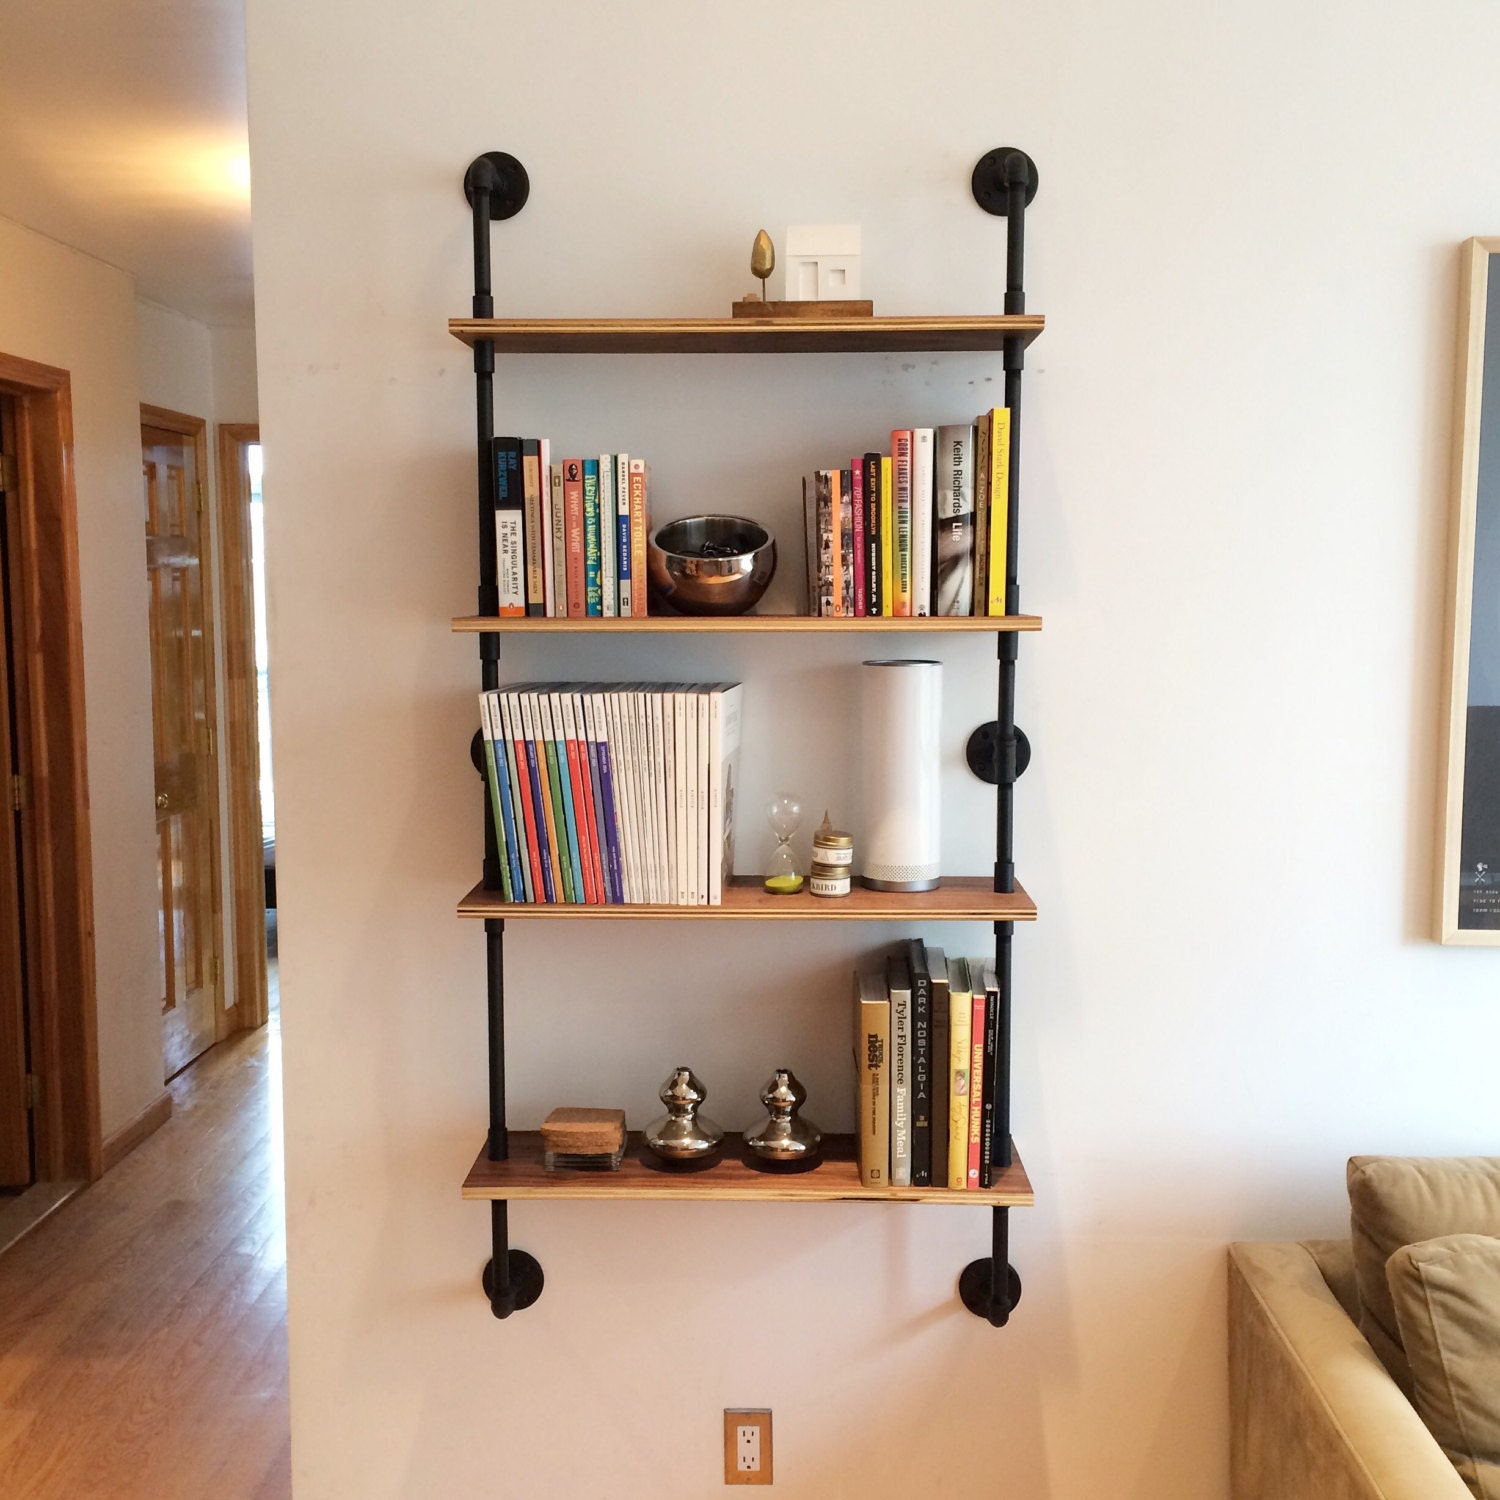 wall mounted pipe shelving unit by cushdesignstudio on etsy. Black Bedroom Furniture Sets. Home Design Ideas